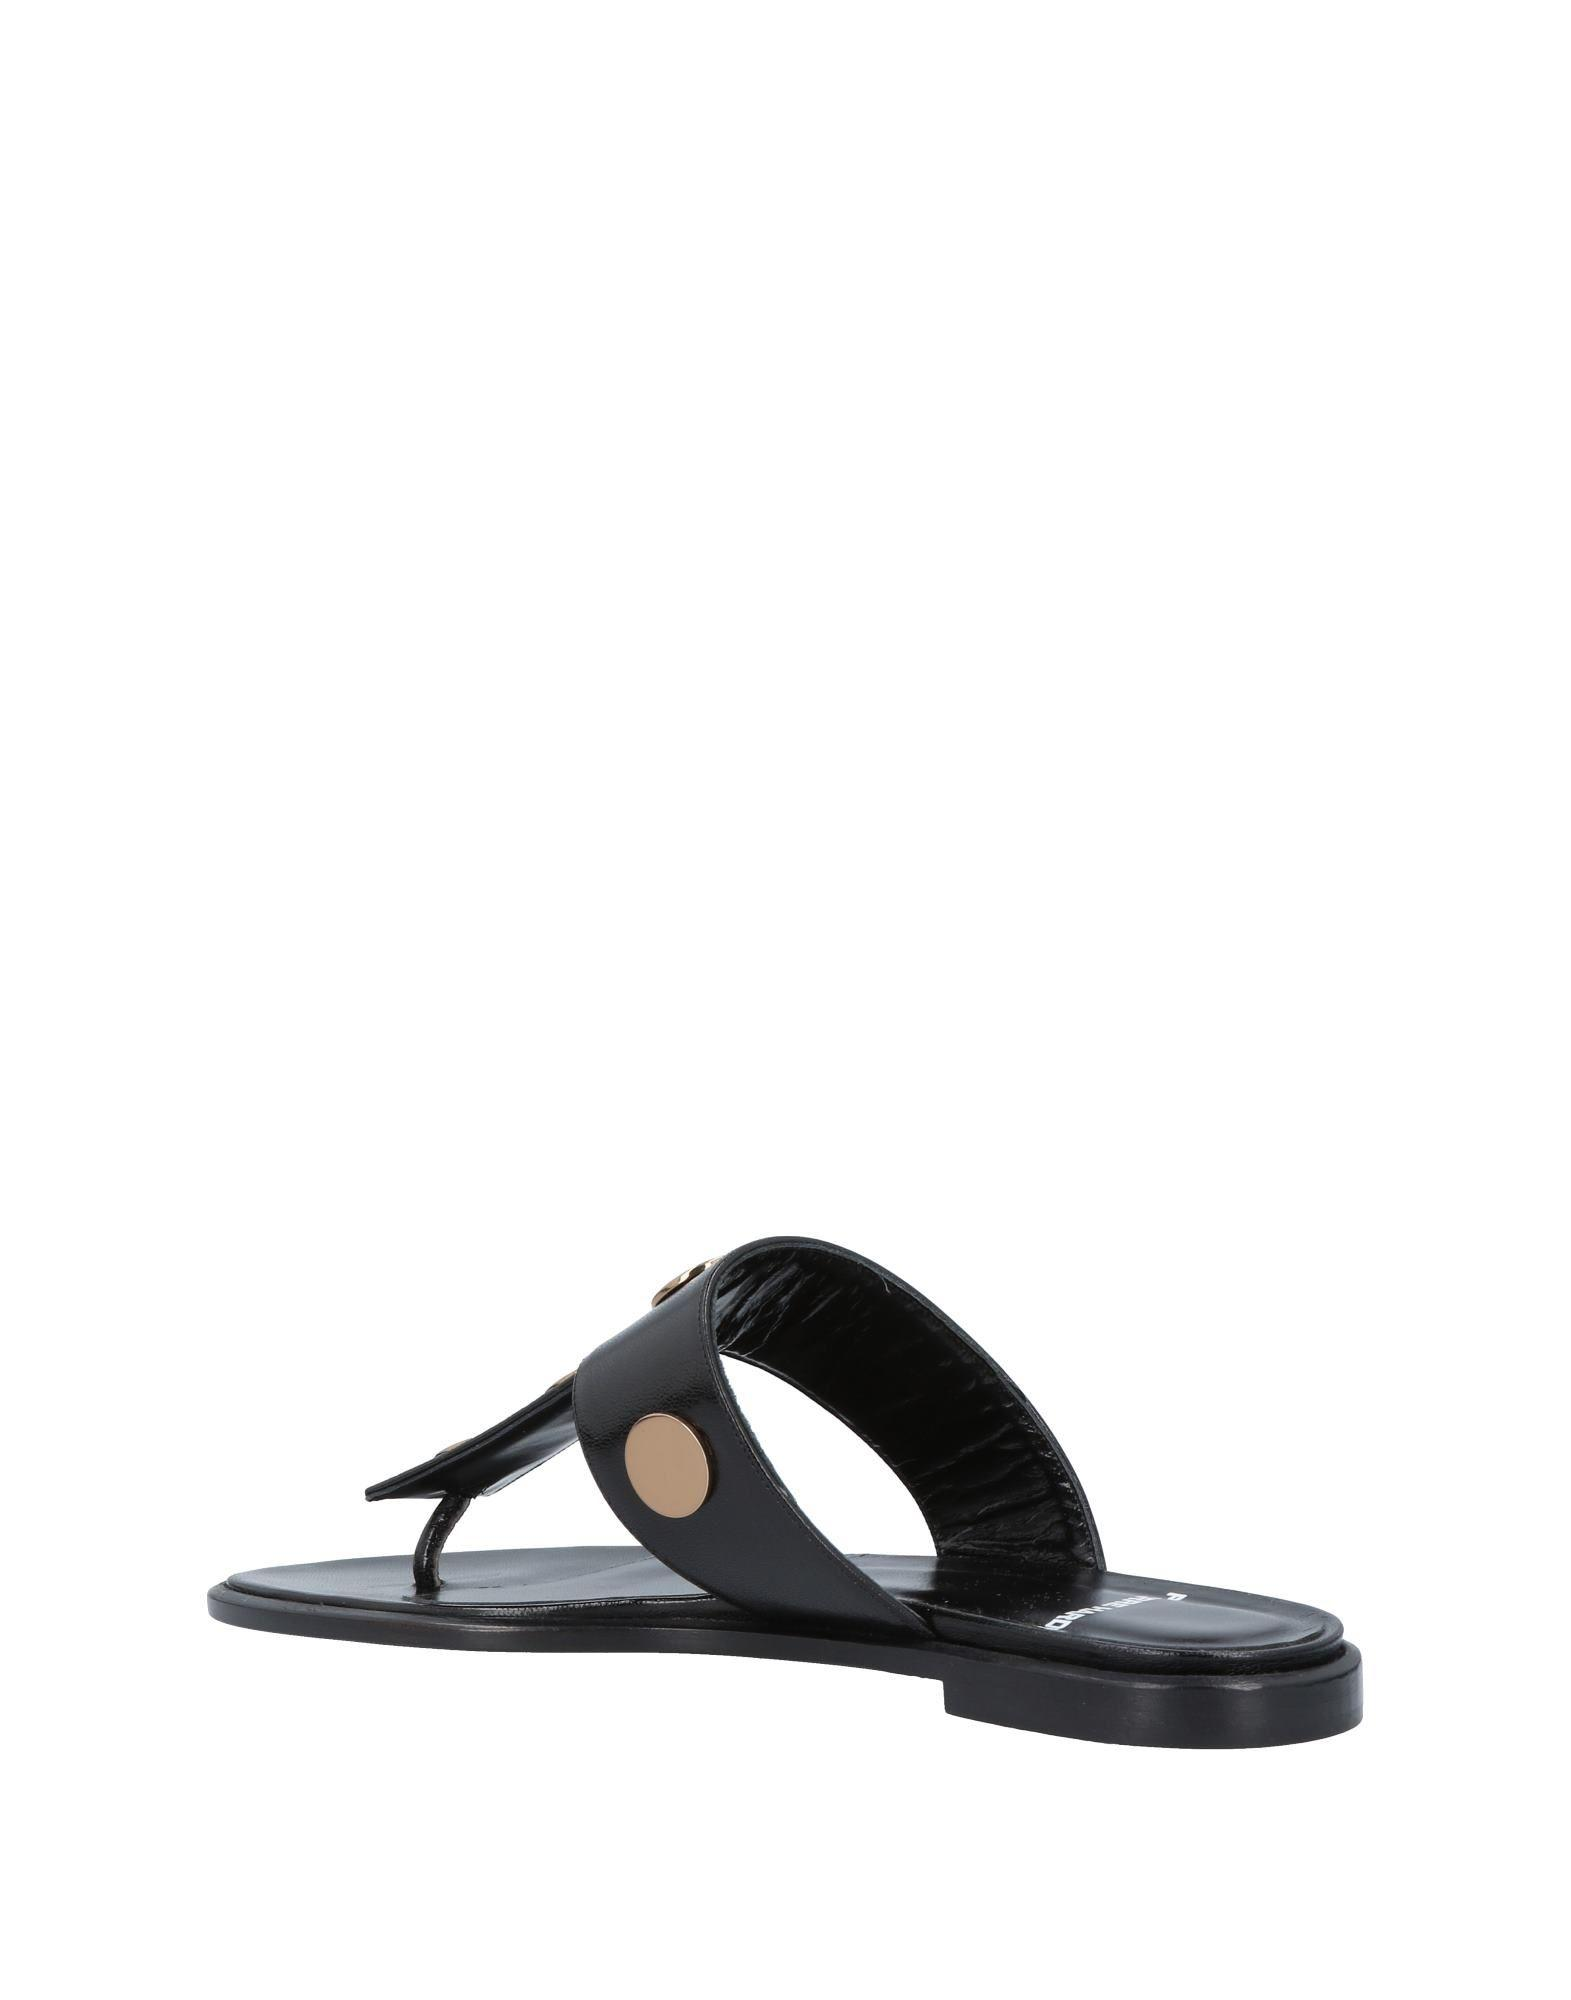 a5b2be6455195f Lyst - Pierre Hardy Women s Ml15black Black Leather Sandals in Black - Save  68%